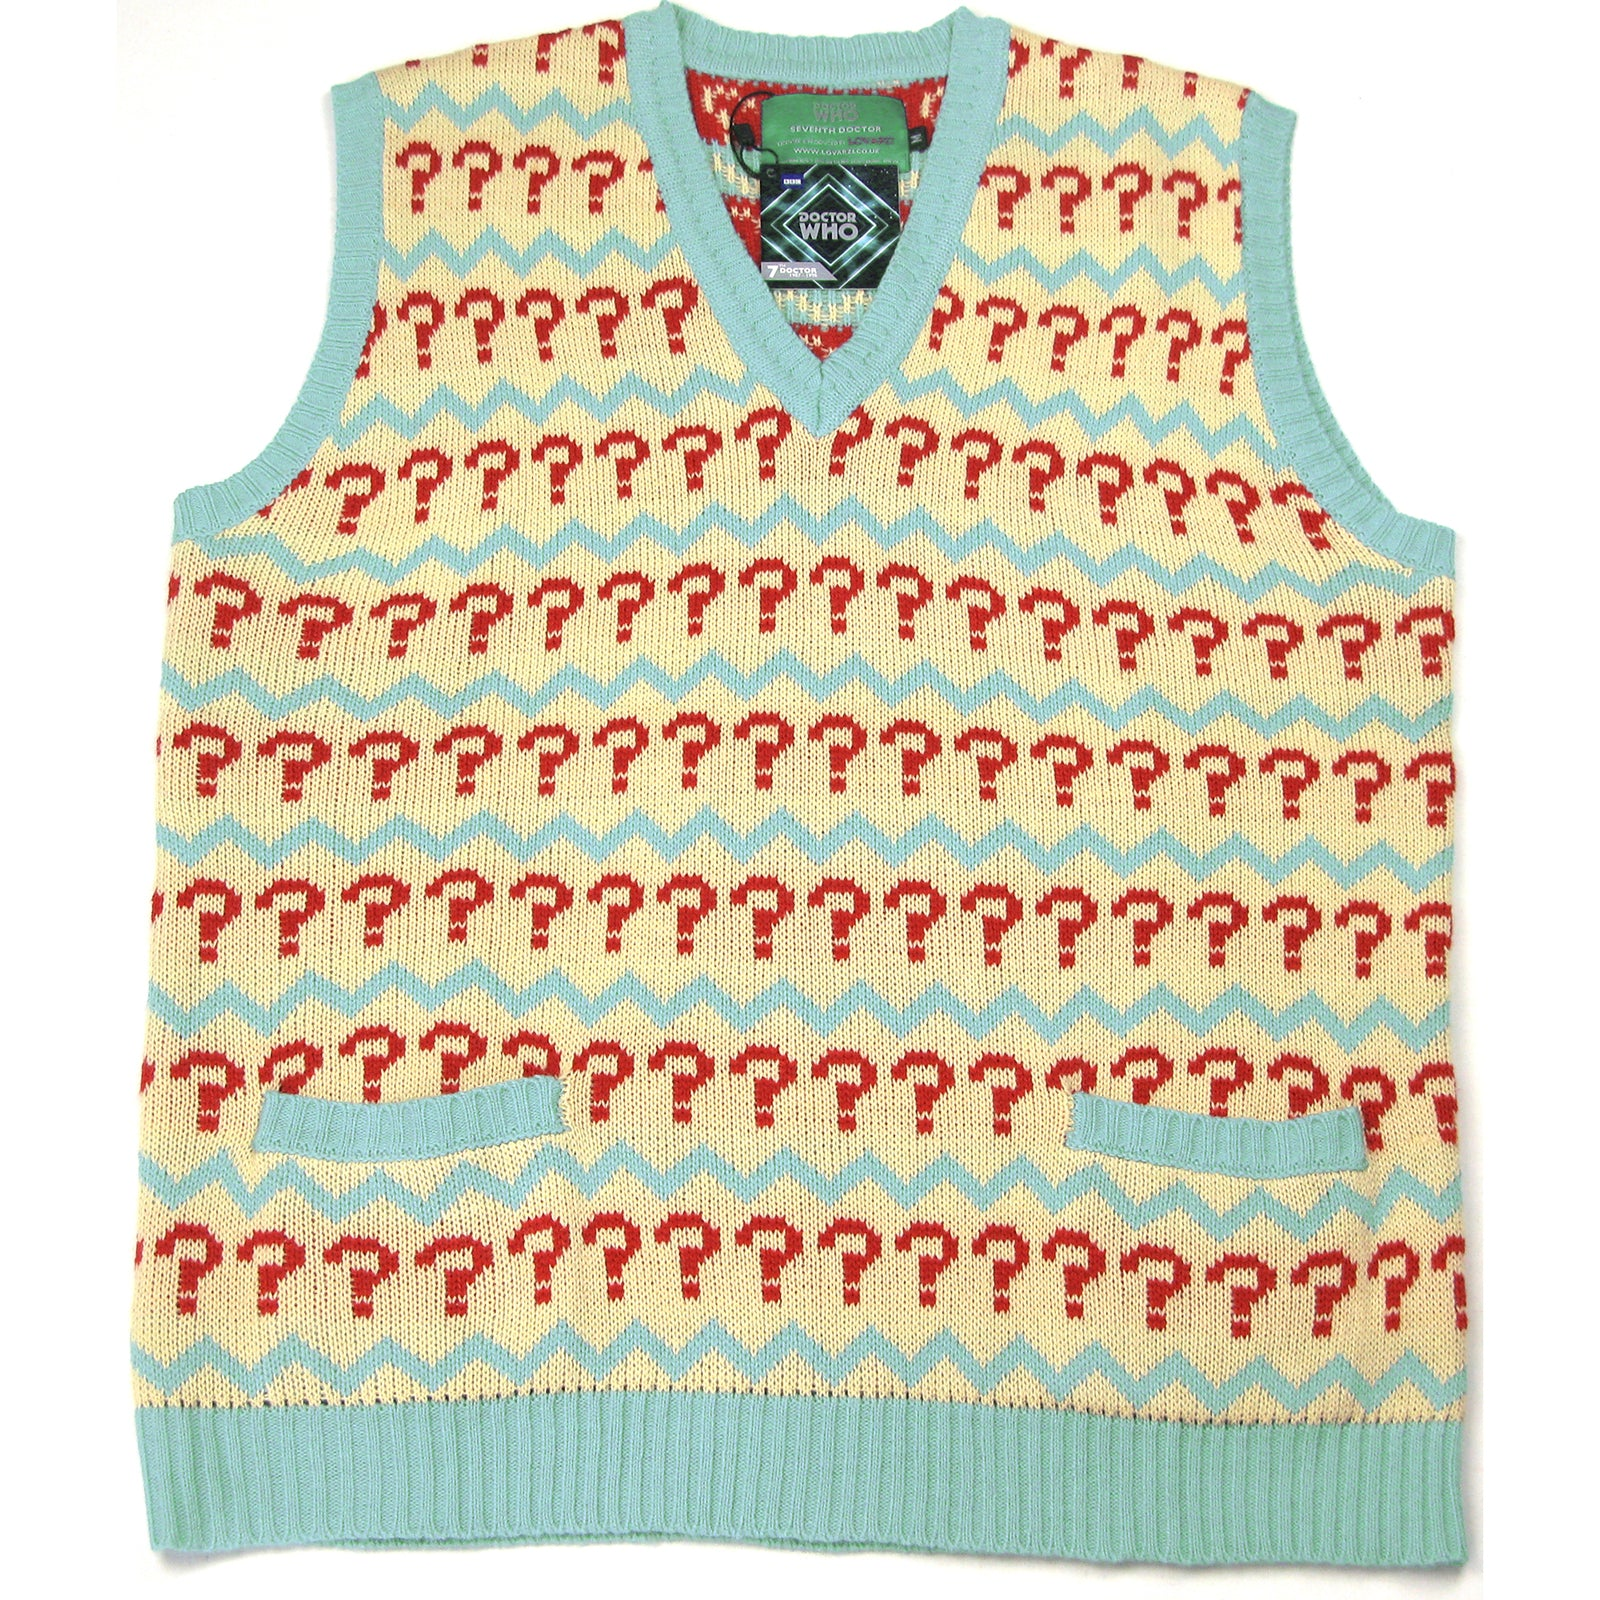 47583c94607 Seventh Doctor Jumper - Doctor Who 7th Doctor (Sylvester McCoy) Question  Mark Tank Top Sweater -